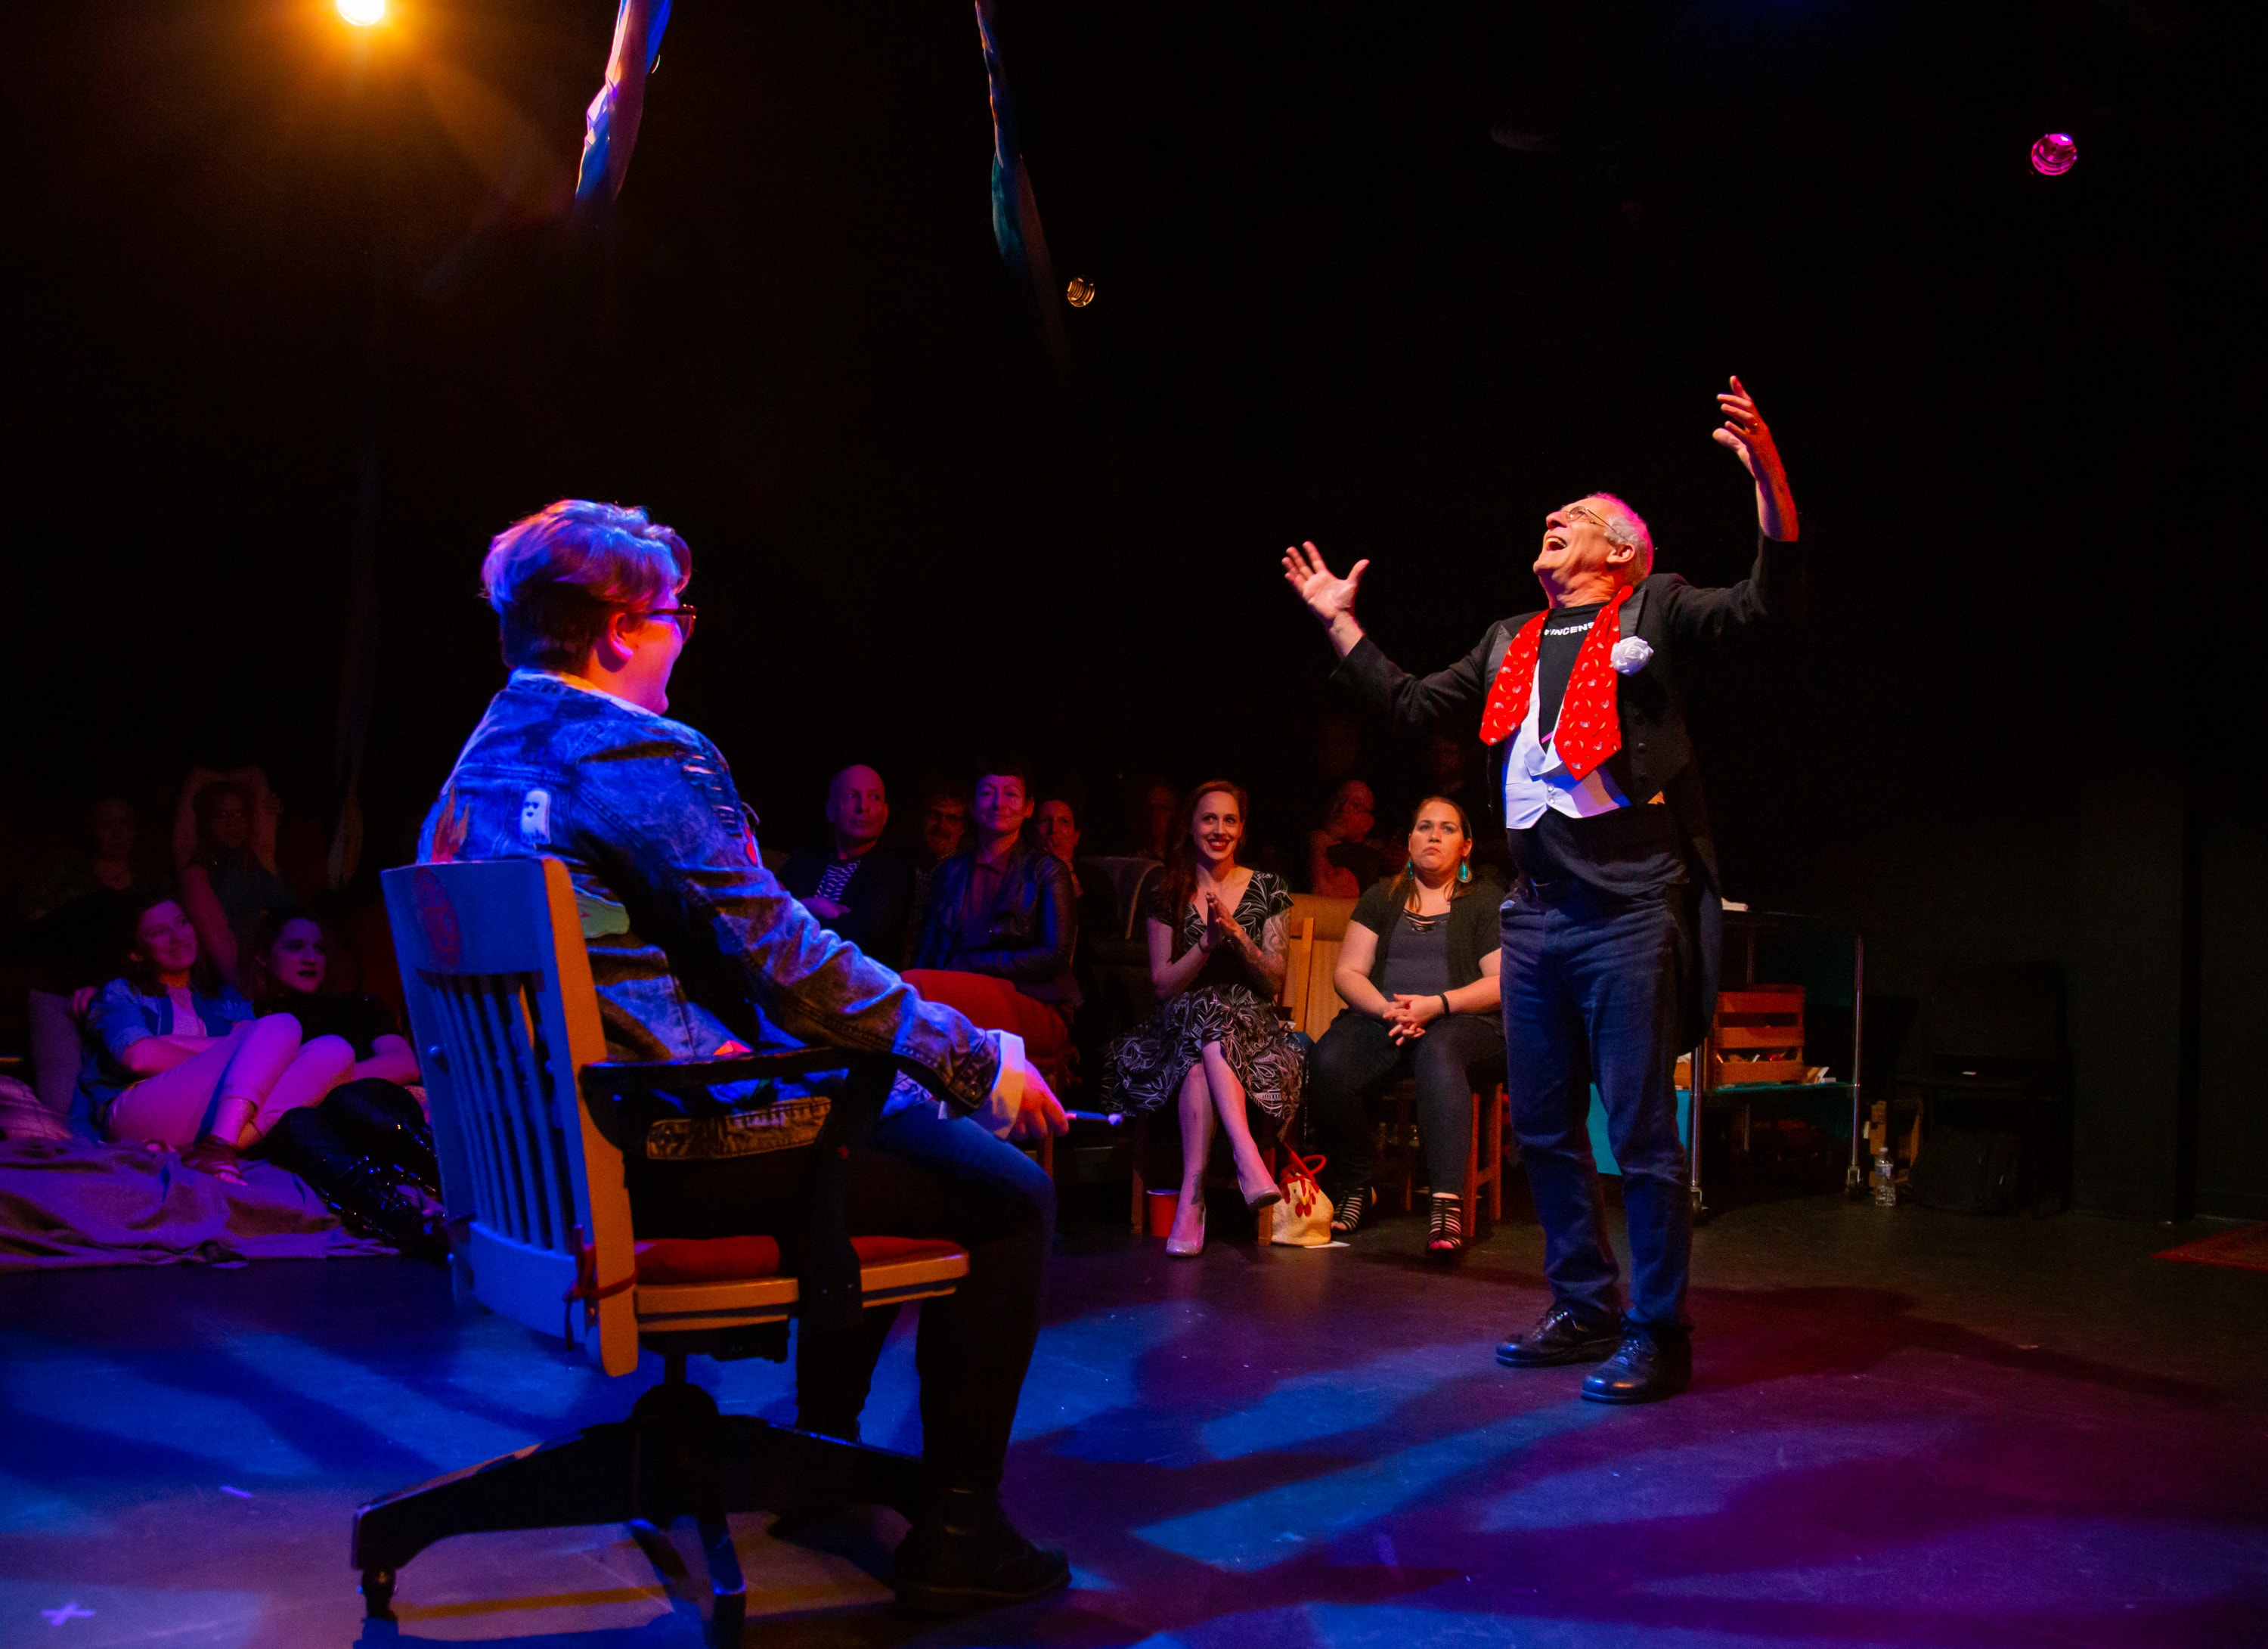 David S Kessler, performing Justice, in 'The Tarot Reading (V).' Photo by Ryan Maxwell Photography.